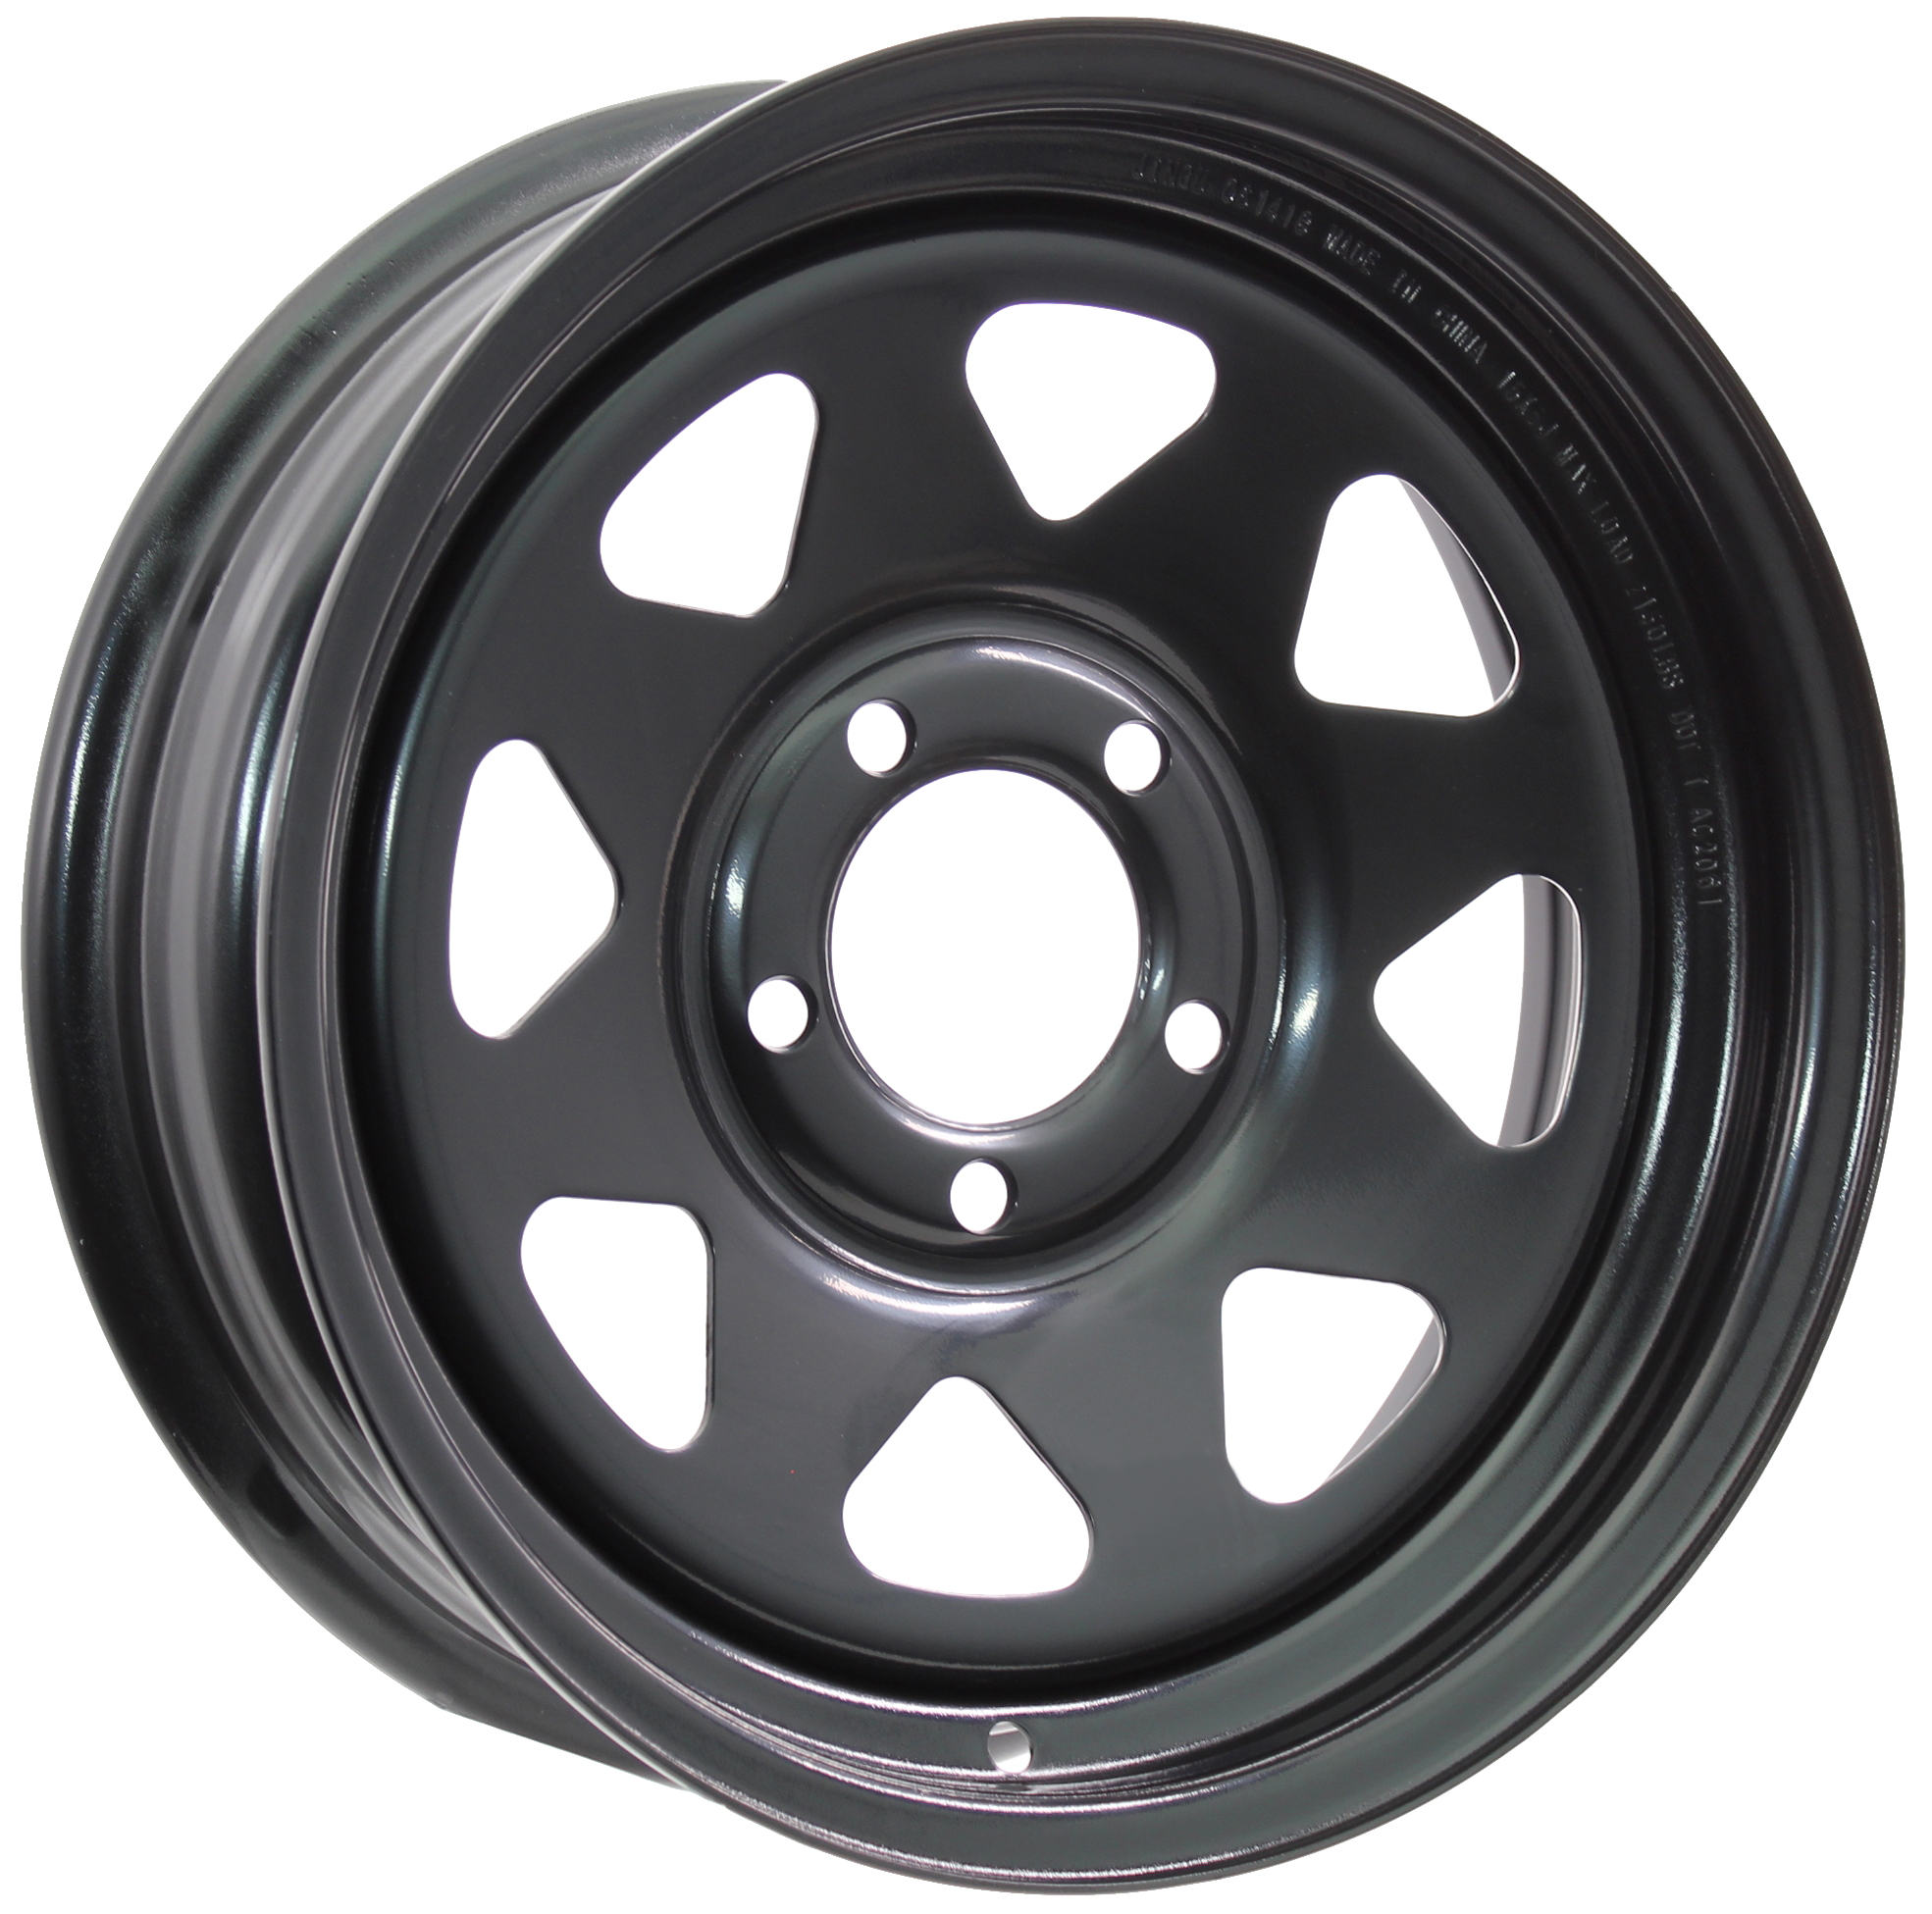 15x6 5-Lug Black Spoke Steel Trailer Wheel Image